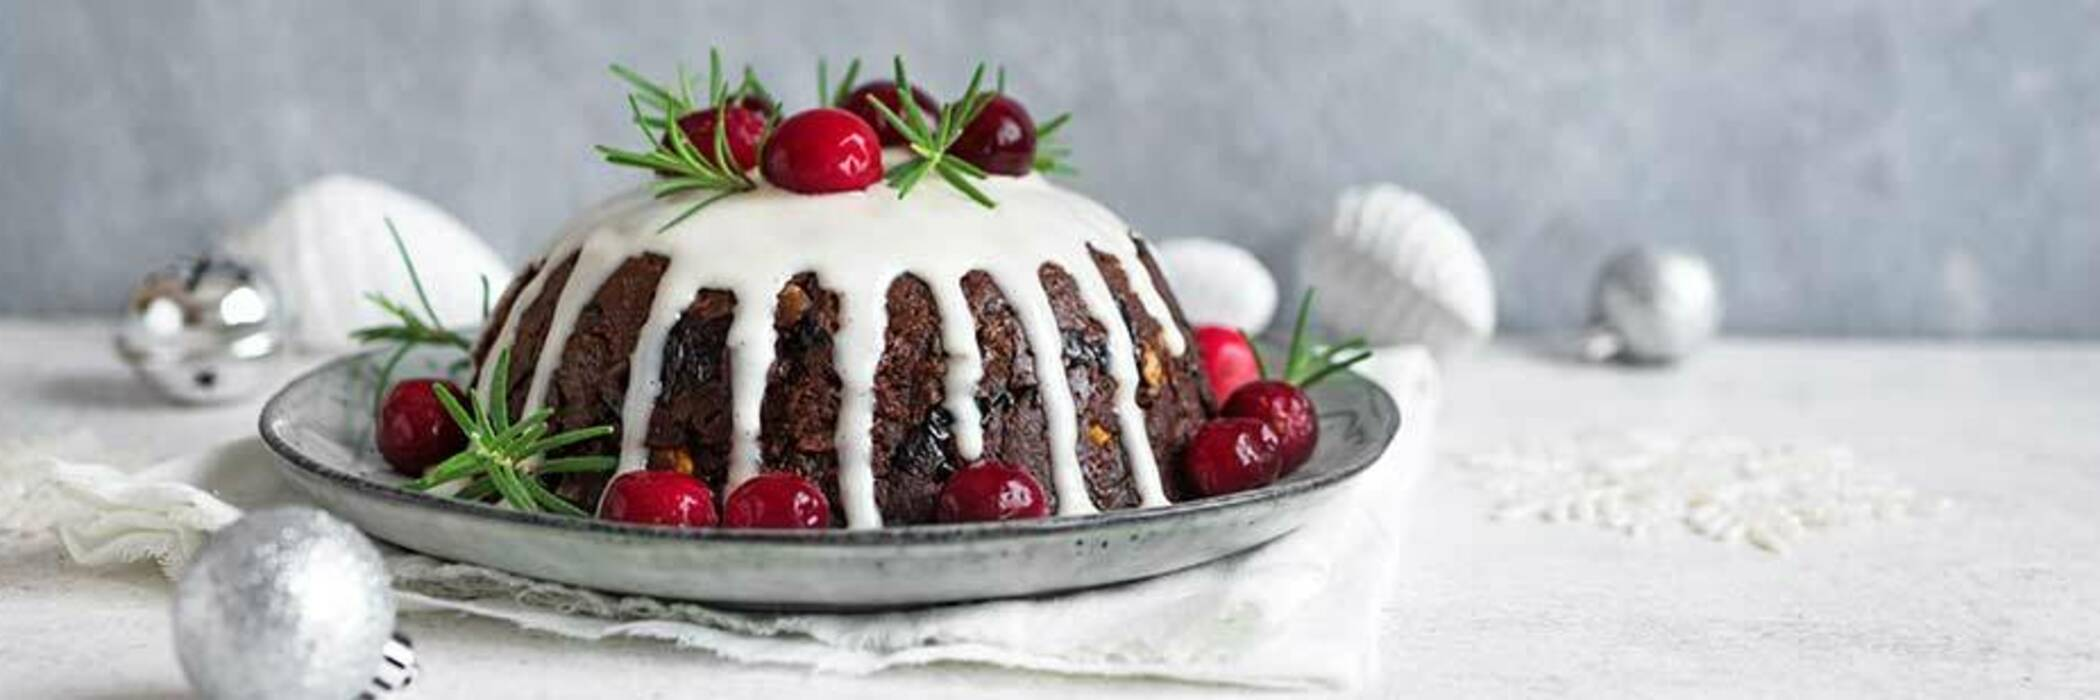 Christmas pudding topped with cherries and cream.